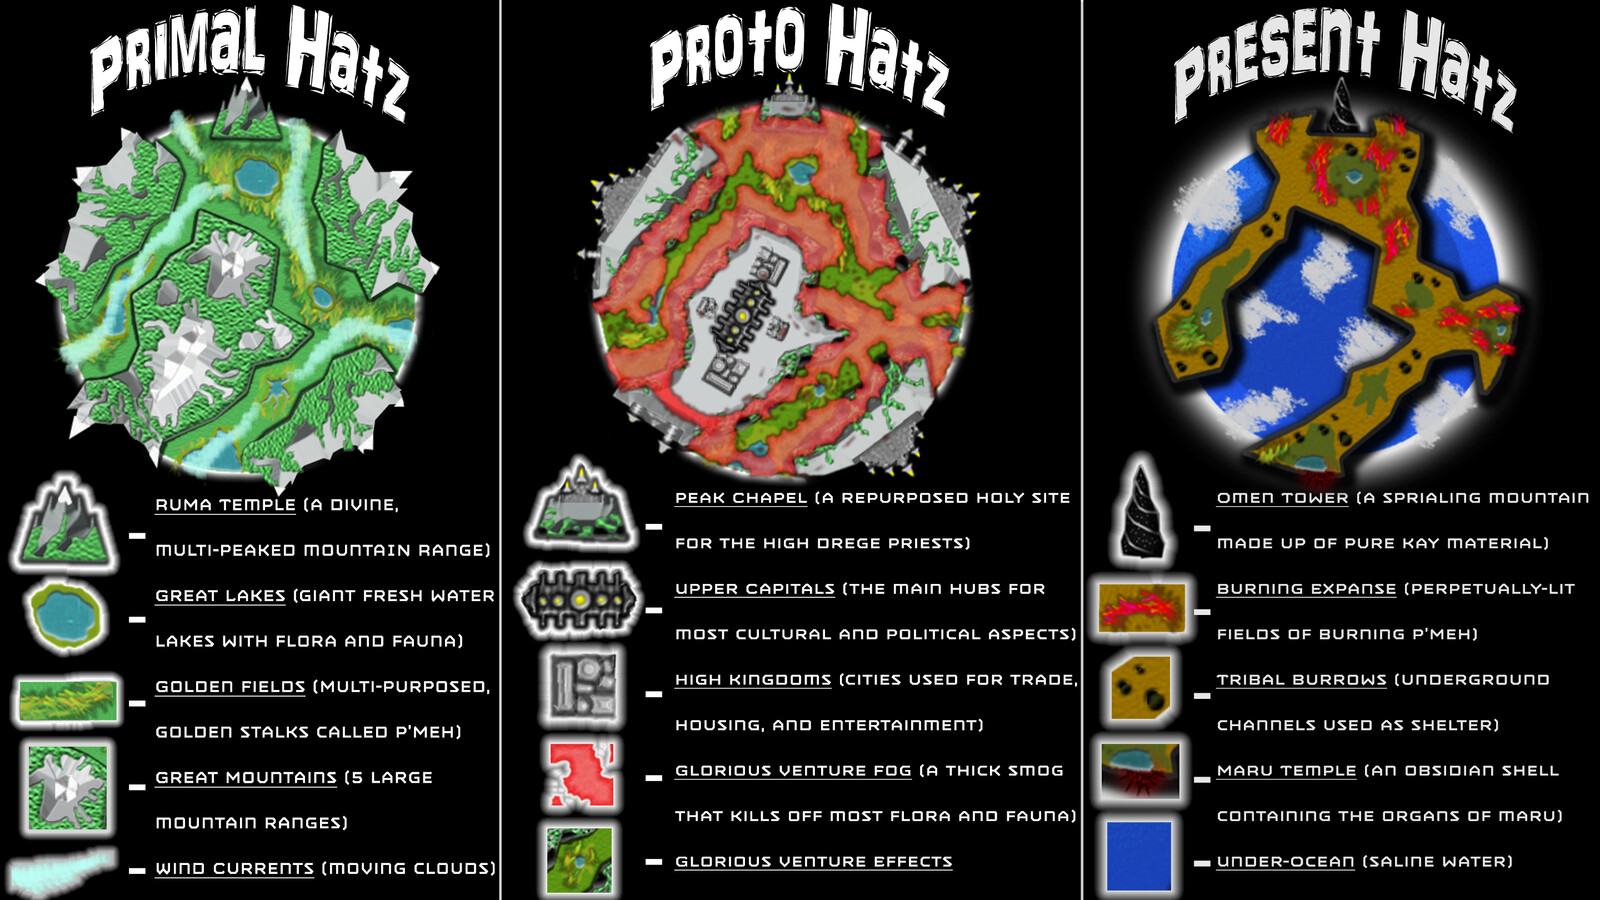 A legend for various landmarks within the 3 main phases of Hatz